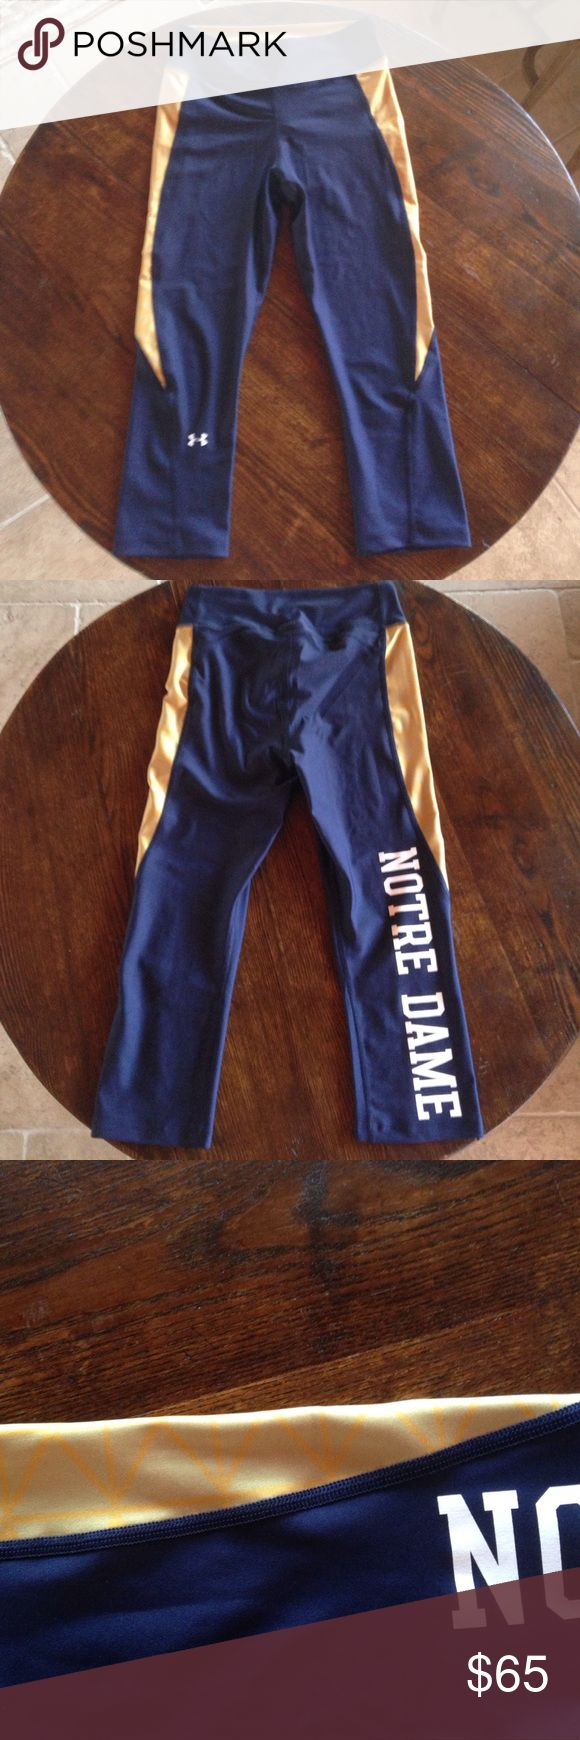 BRAND NEW EXCLUSIVE Notre Dame leggings Exclusive brand new, Notre Dame, three quarter length leggings- cannot be bought in store or online; navy blue and gold Under Armour Pants Leggings